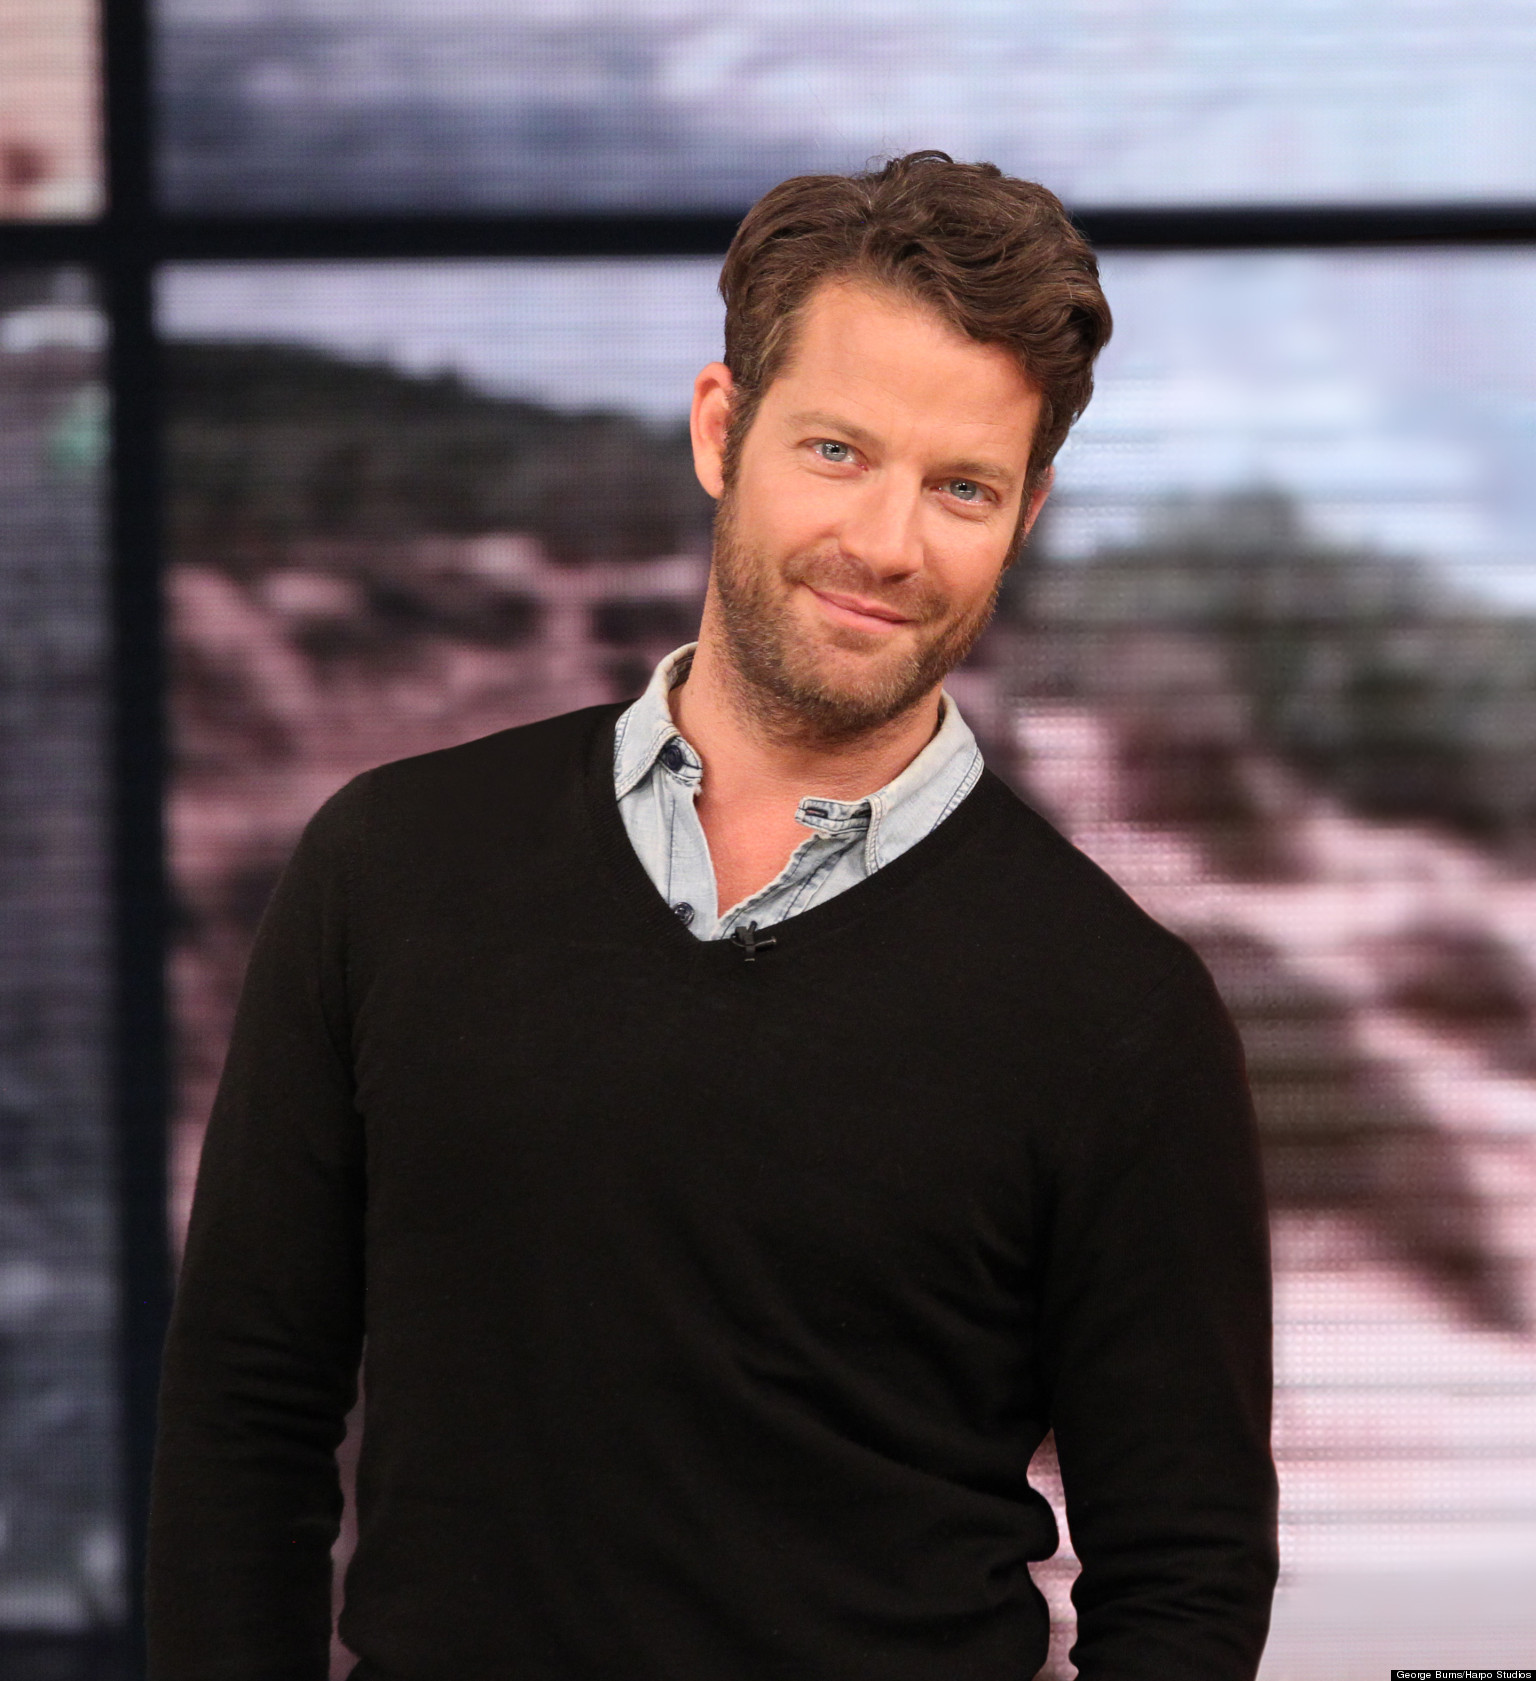 Home Decorating Ideas From Nate Berkus: How To Make Your House ...